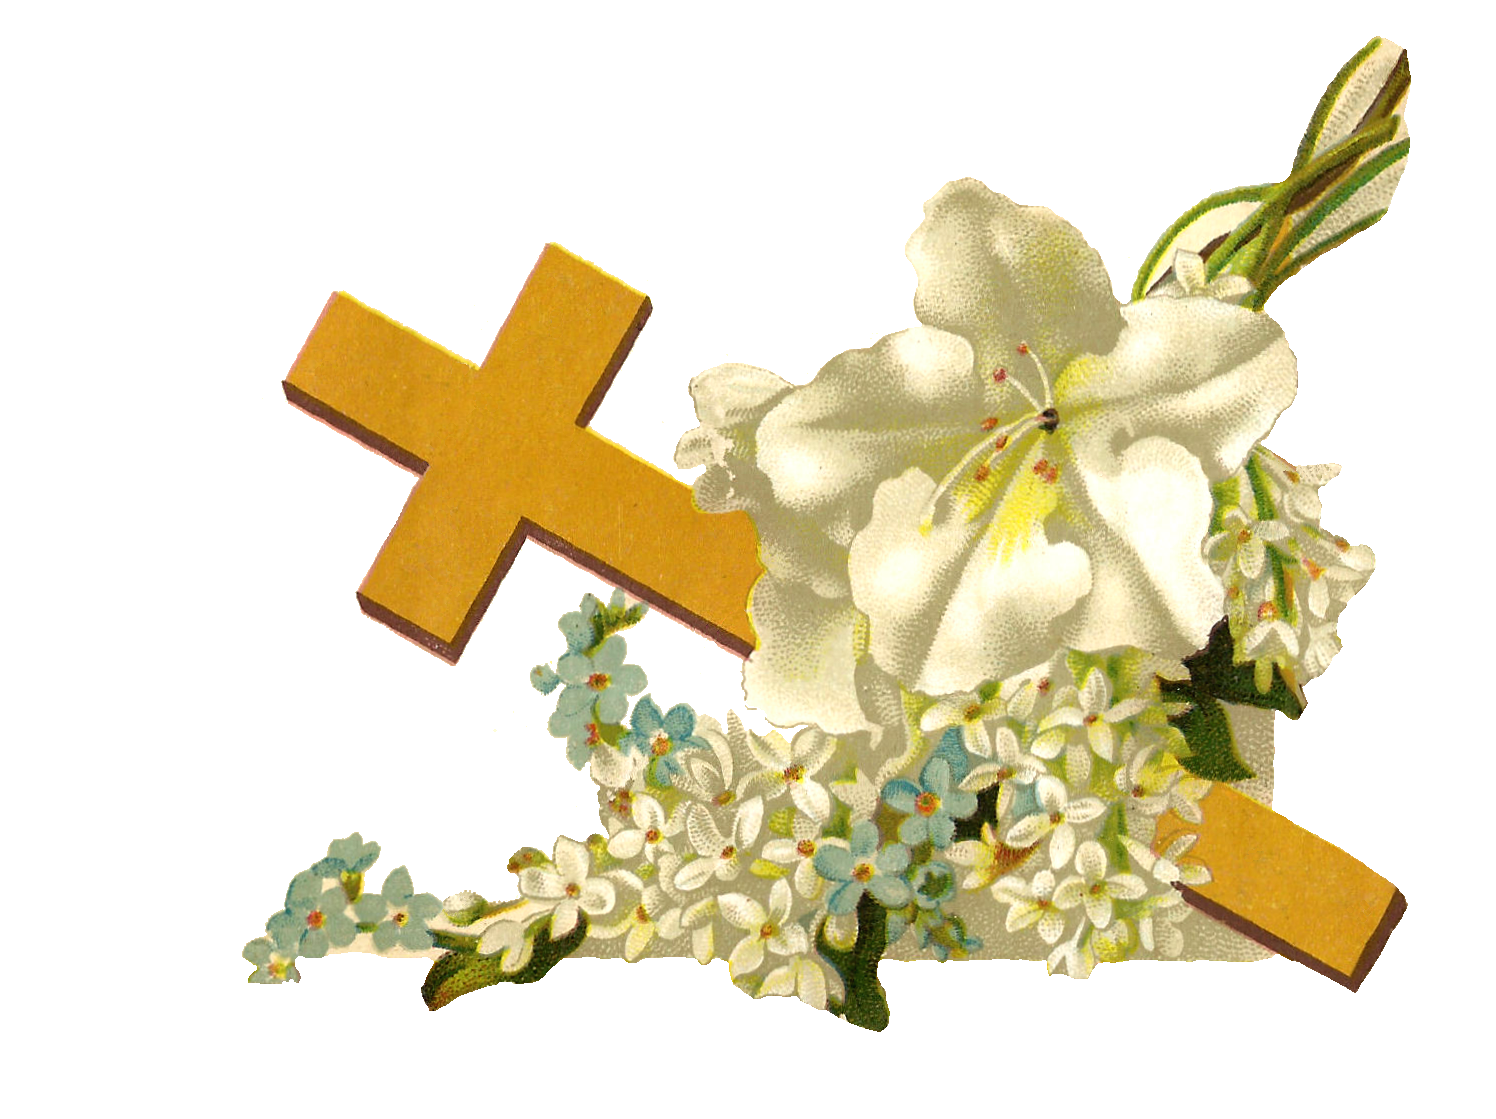 Music clipart religious. Free beautiful cliparts download